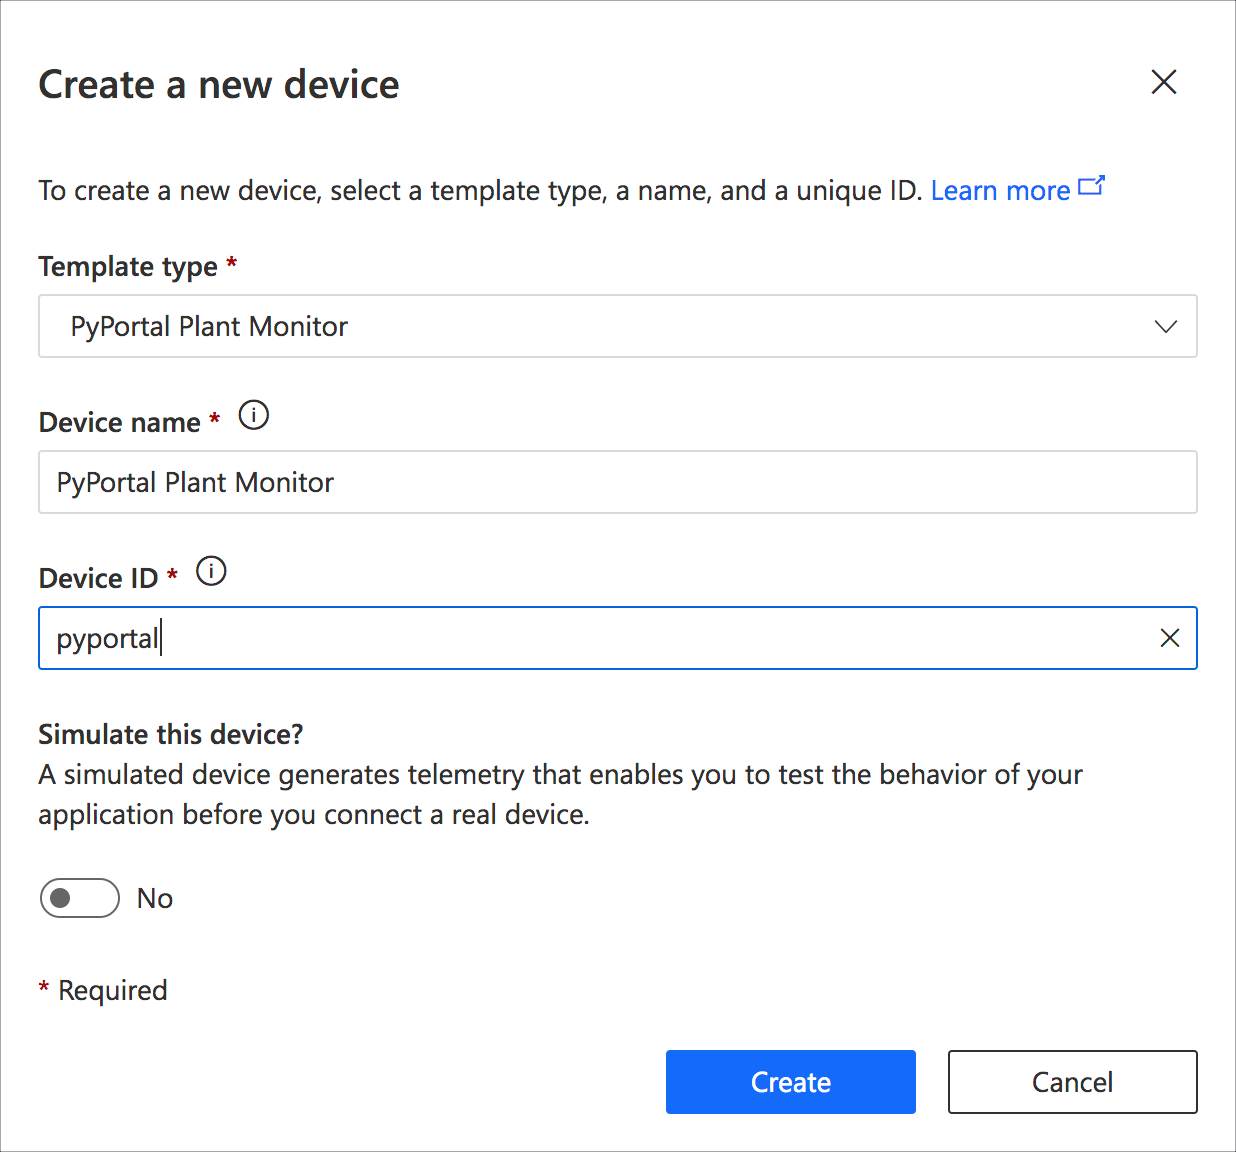 The create new device dialog where you can select the template type and give the device a name and id